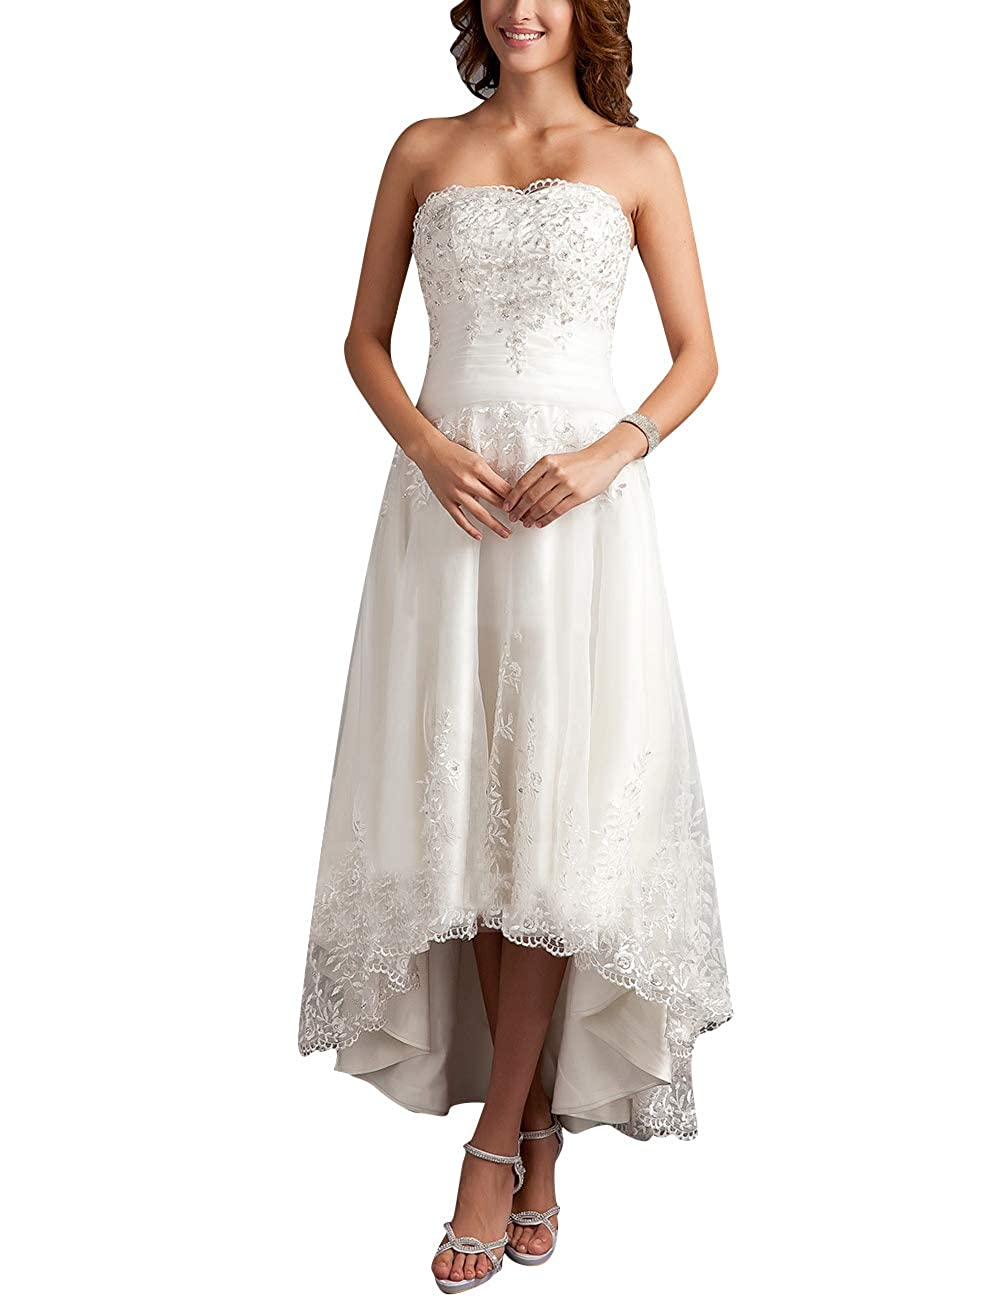 Cdress High Low Wedding Dresses Plus Size Bridal Gowns ...